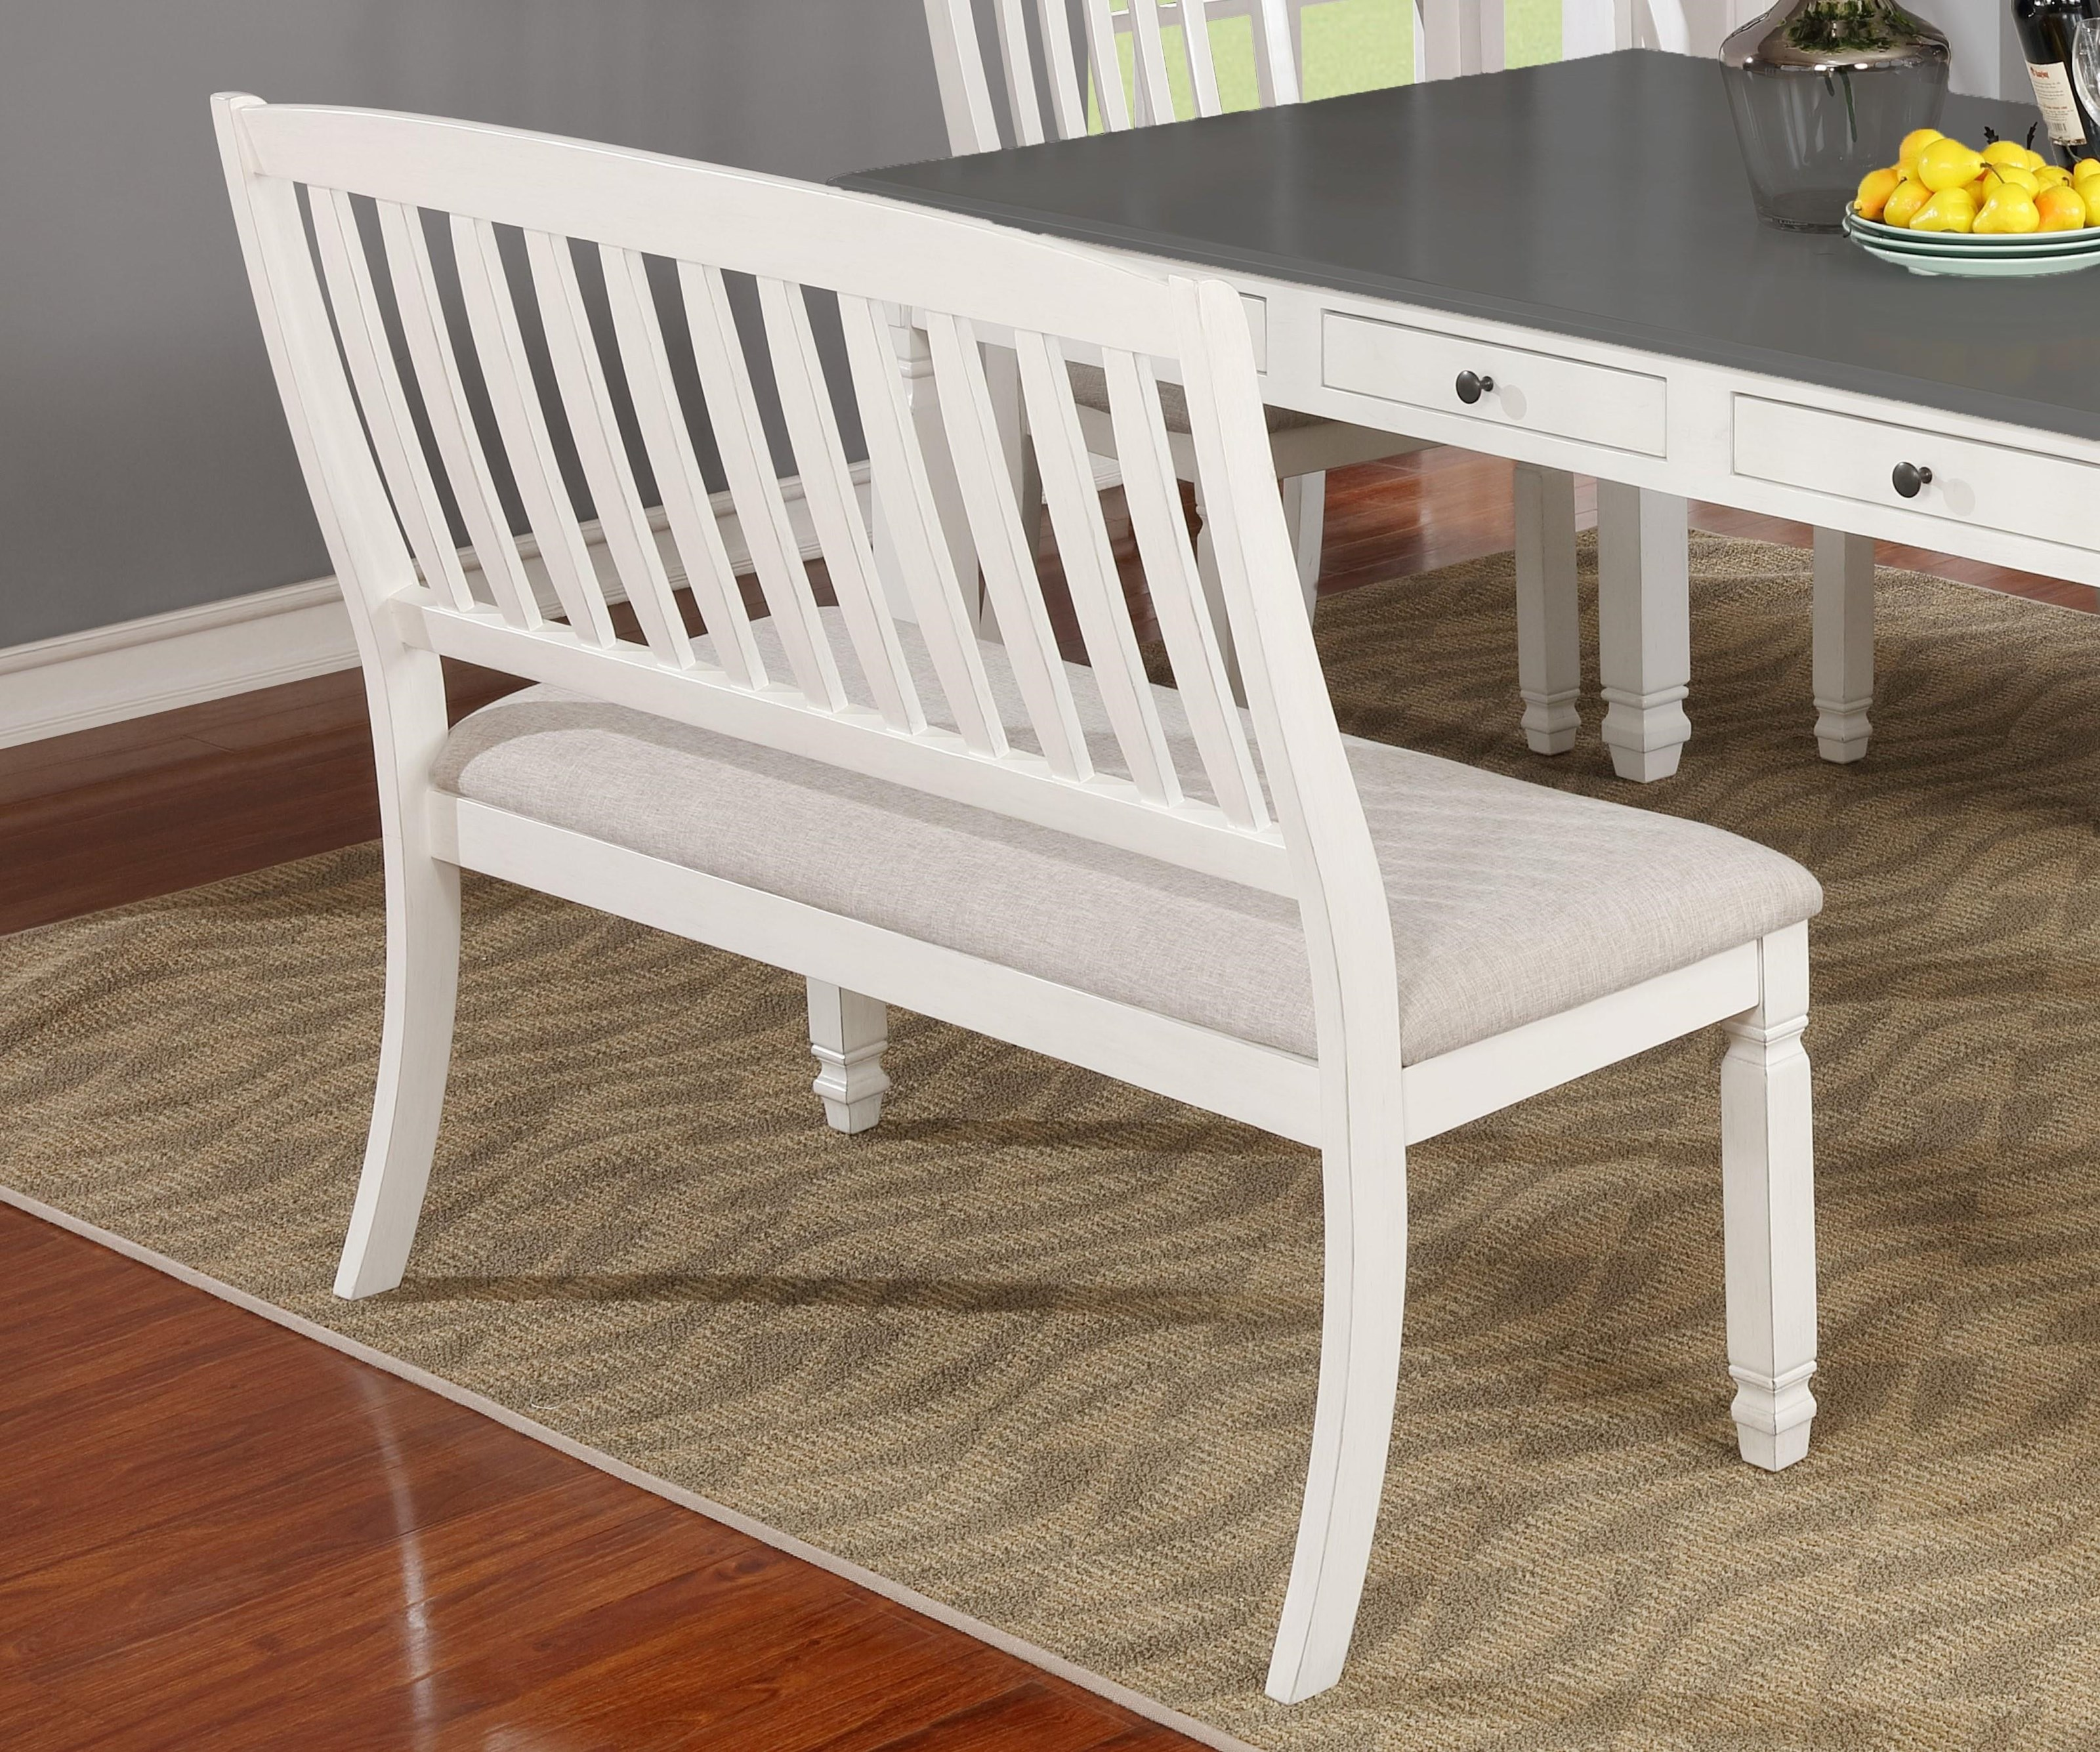 C1735 Dining Bench by Lifestyle at Furniture Fair - North Carolina